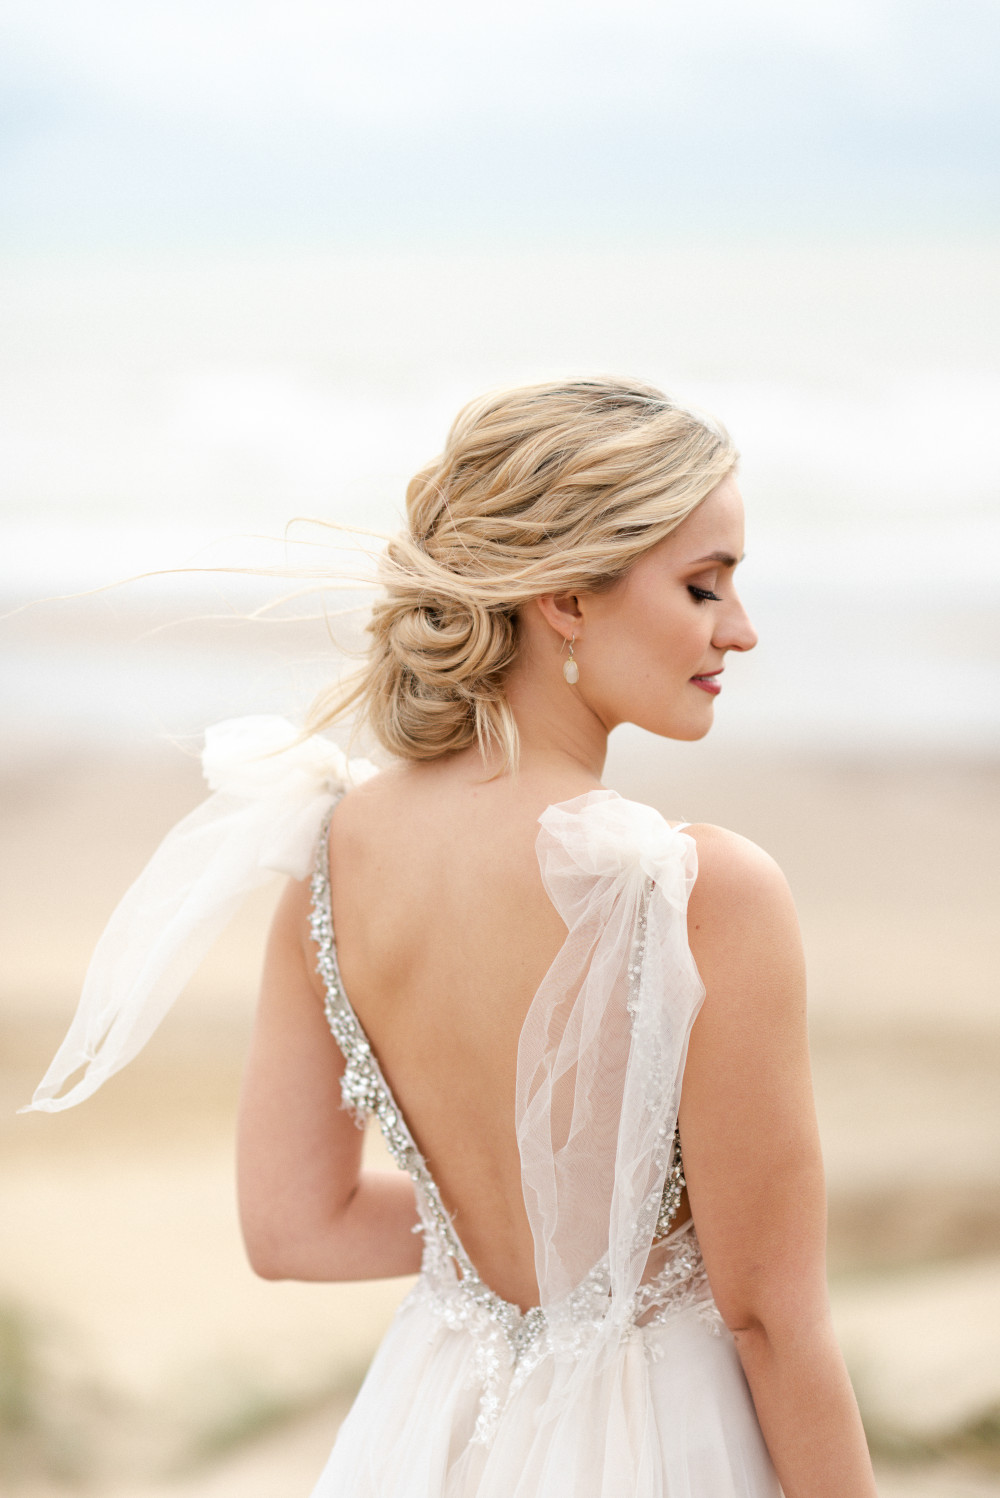 Super textured chignon with striking makeup for this beach themed photoshoot. - Make Me Bridal Artist: Laura Anne Hair & Makeup Designer. Photography by: Eva Tarnok. #beachwaves #modernbride #texturedupdo #beachwedding